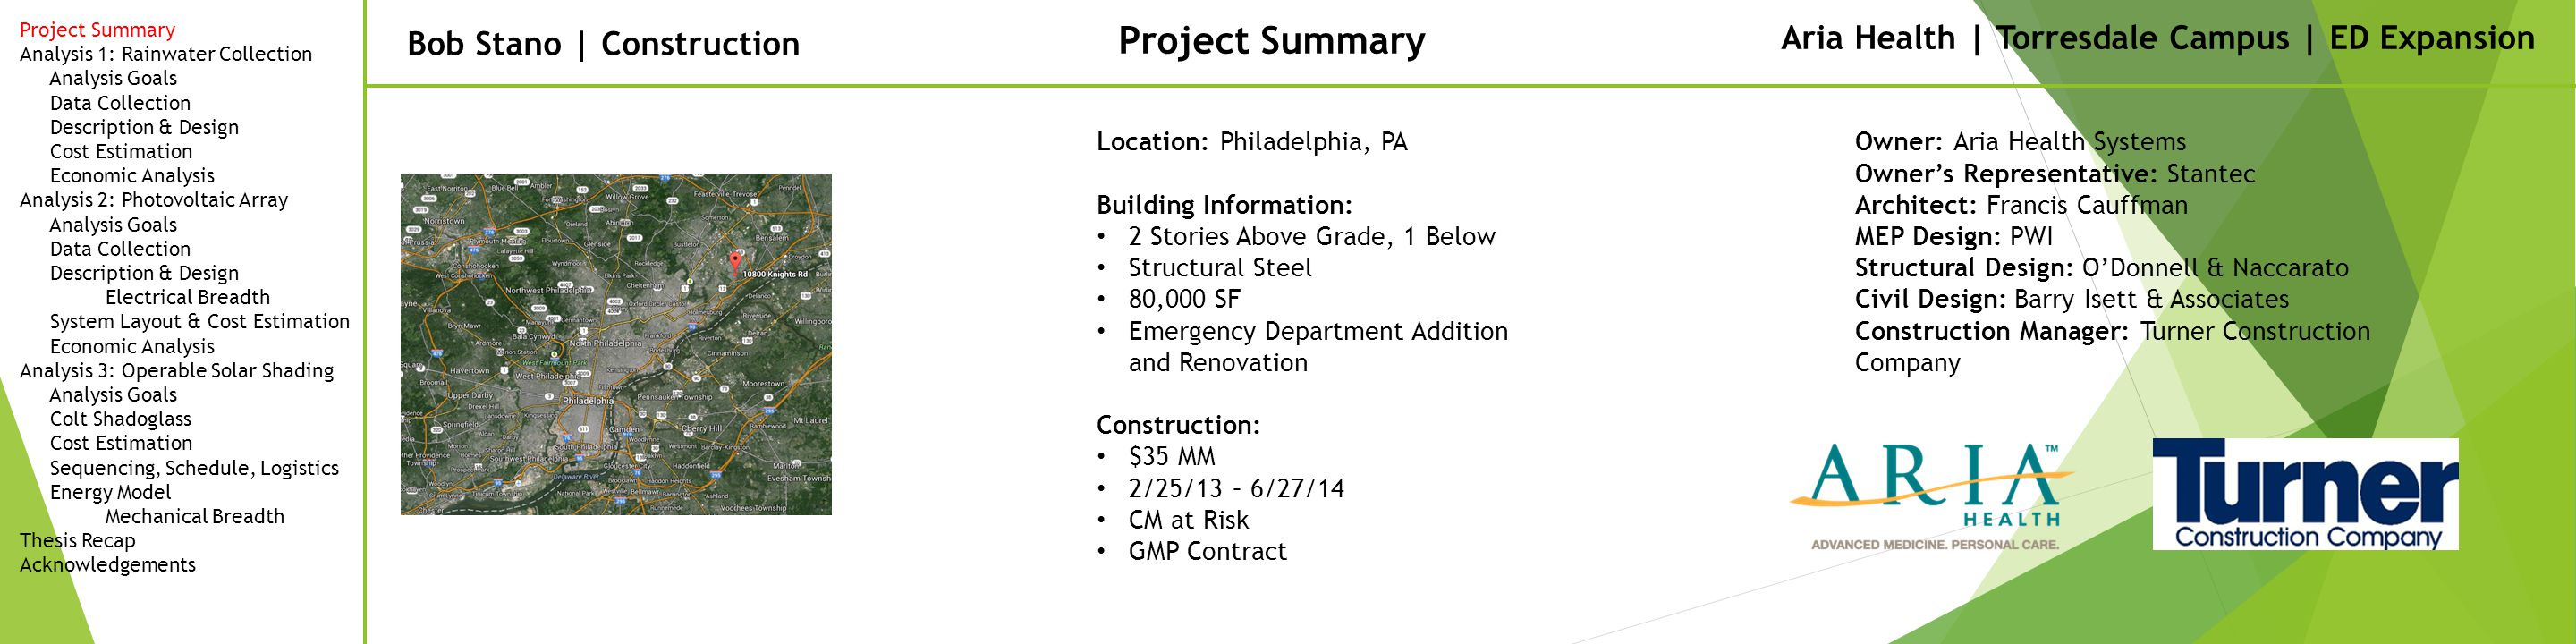 Bob Stano | Construction Project Summary Location: Philadelphia, PA Building Information: 2 Stories Above Grade, 1 Below Structural Steel 80,000 SF Emergency Department Addition and Renovation Construction: $35 MM 2/25/13 – 6/27/14 CM at Risk GMP Contract Owner: Aria Health Systems Owner's Representative: Stantec Architect: Francis Cauffman MEP Design: PWI Structural Design: O'Donnell & Naccarato Civil Design: Barry Isett & Associates Construction Manager: Turner Construction Company Aria Health | Torresdale Campus | ED Expansion Project Summary Analysis 1: Rainwater Collection Analysis Goals Data Collection Description & Design Cost Estimation Economic Analysis Analysis 2: Photovoltaic Array Analysis Goals Data Collection Description & Design Electrical Breadth System Layout & Cost Estimation Economic Analysis Analysis 3: Operable Solar Shading Analysis Goals Colt Shadoglass Cost Estimation Sequencing, Schedule, Logistics Energy Model Mechanical Breadth Thesis Recap Acknowledgements